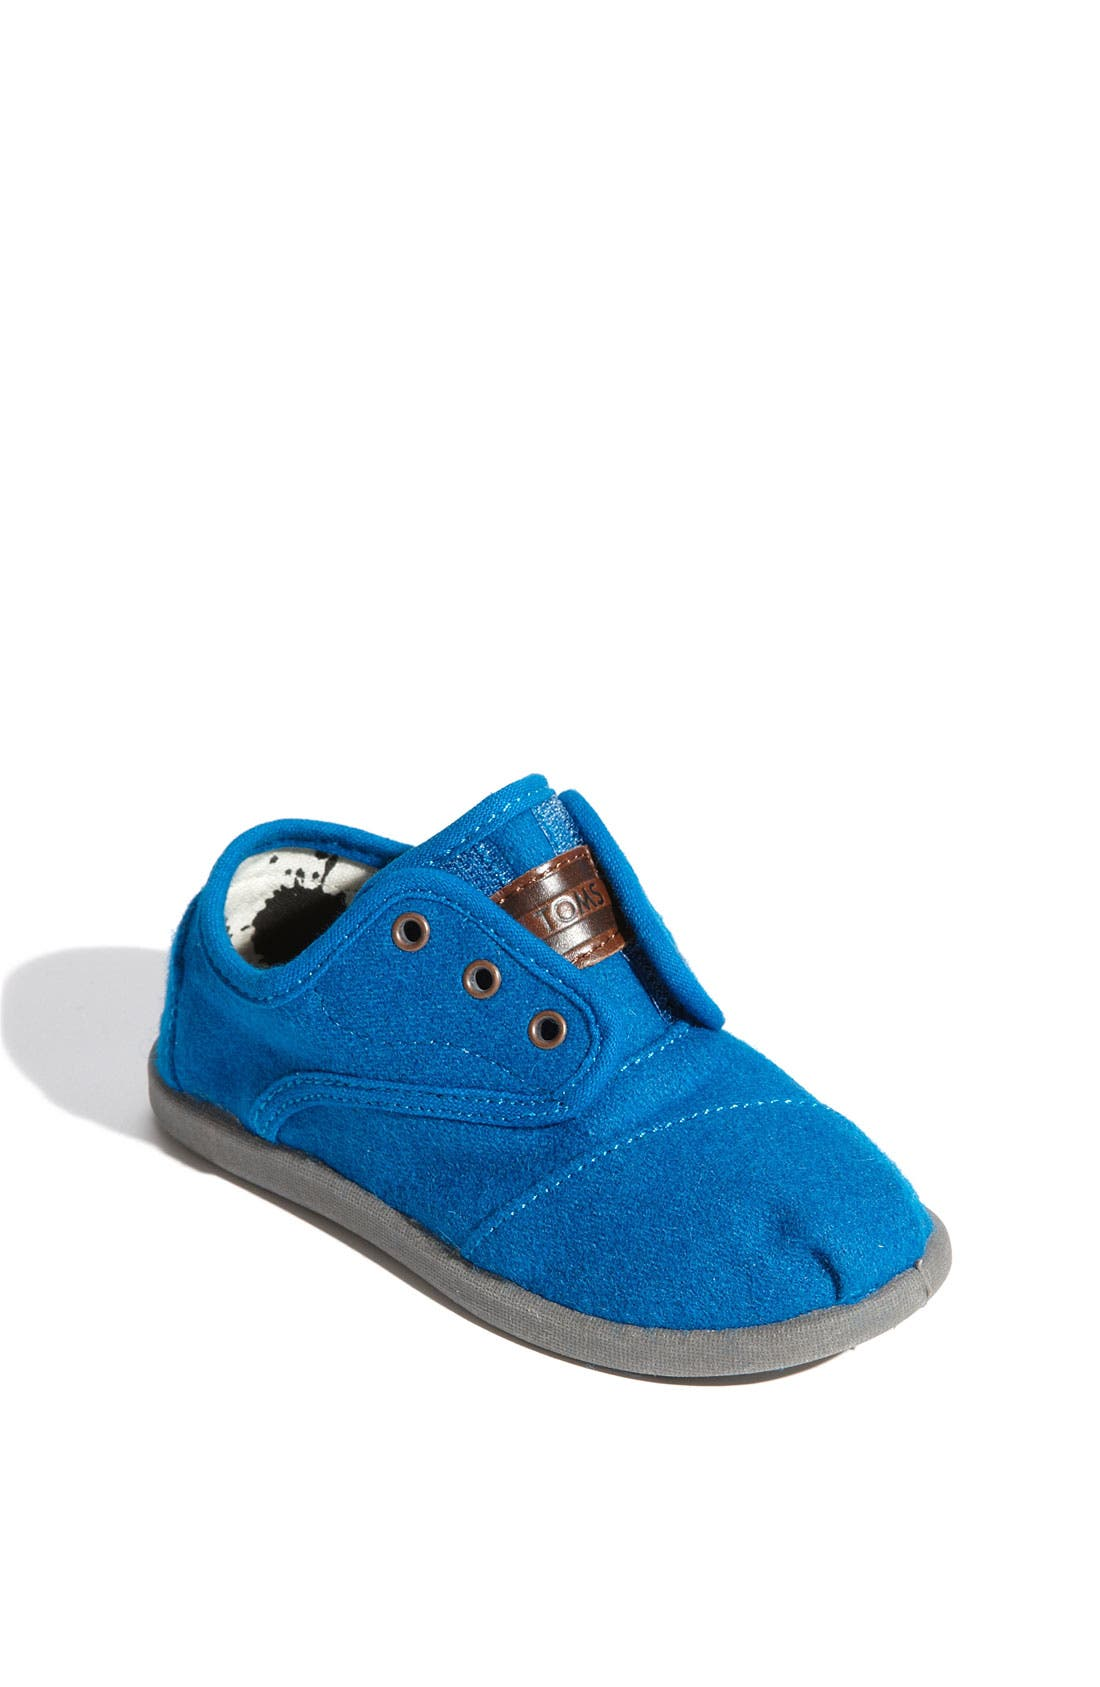 Main Image - TOMS 'Cordones - Tiny' Woolen Slip-On Sneaker (Baby, Walker & Toddler)